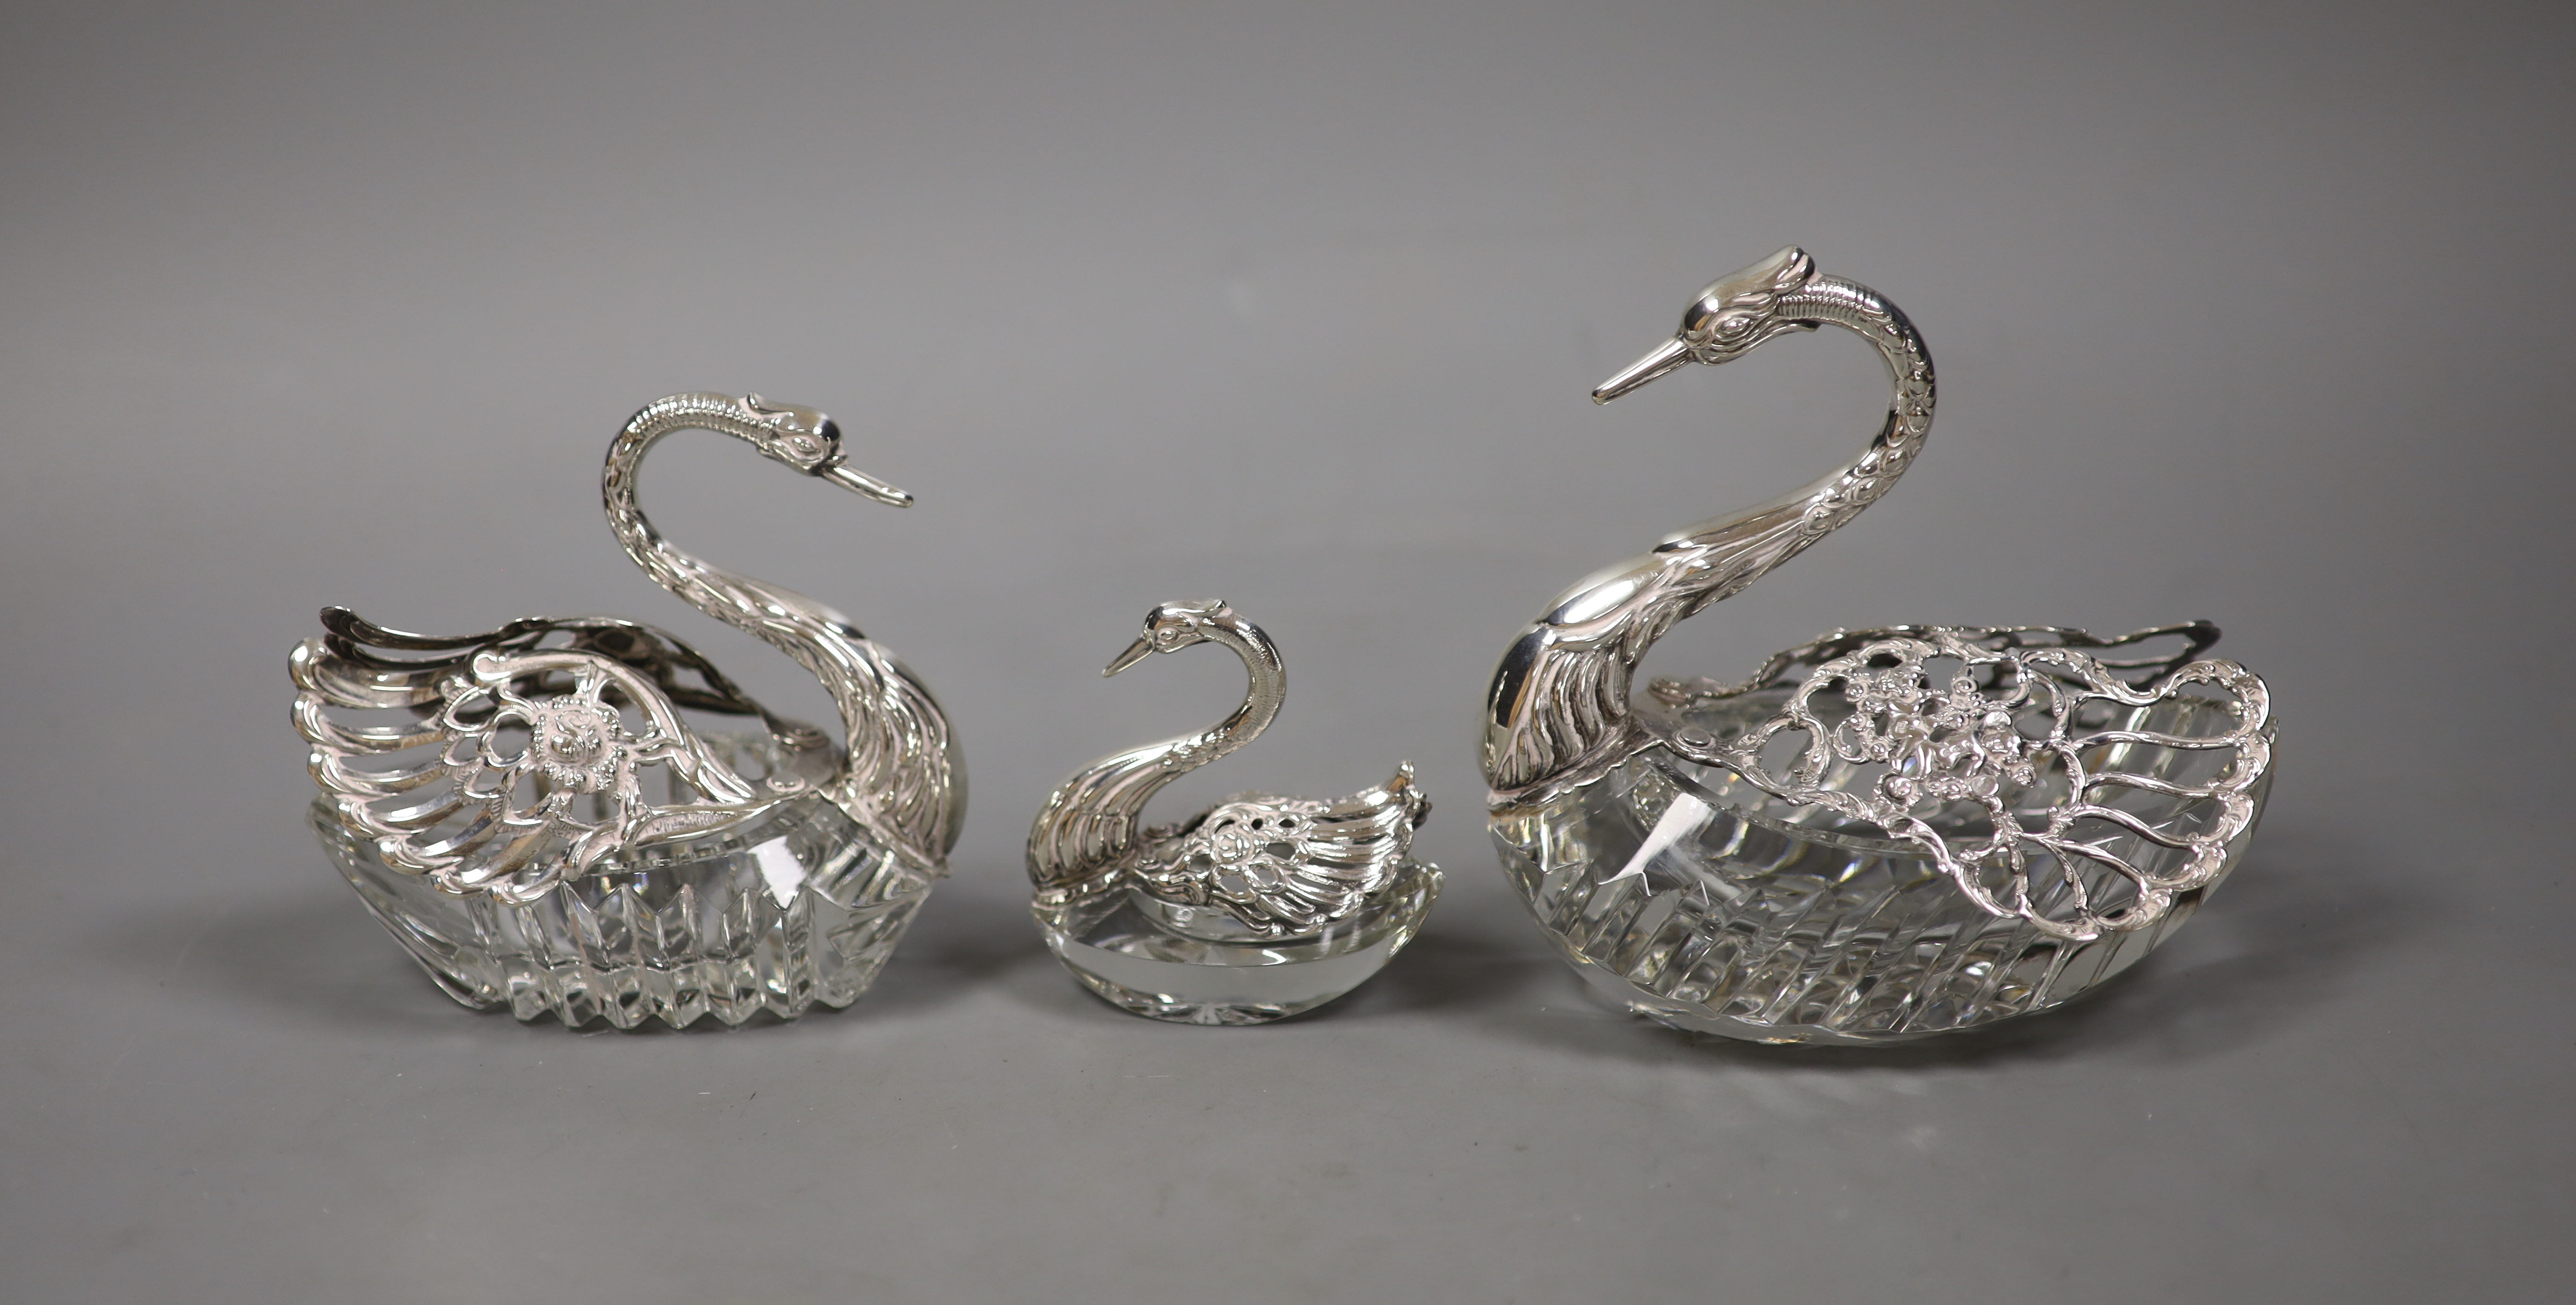 A set of three graduated silver-mounted cut glass 'swan' bon bon dishes, - Image 2 of 3